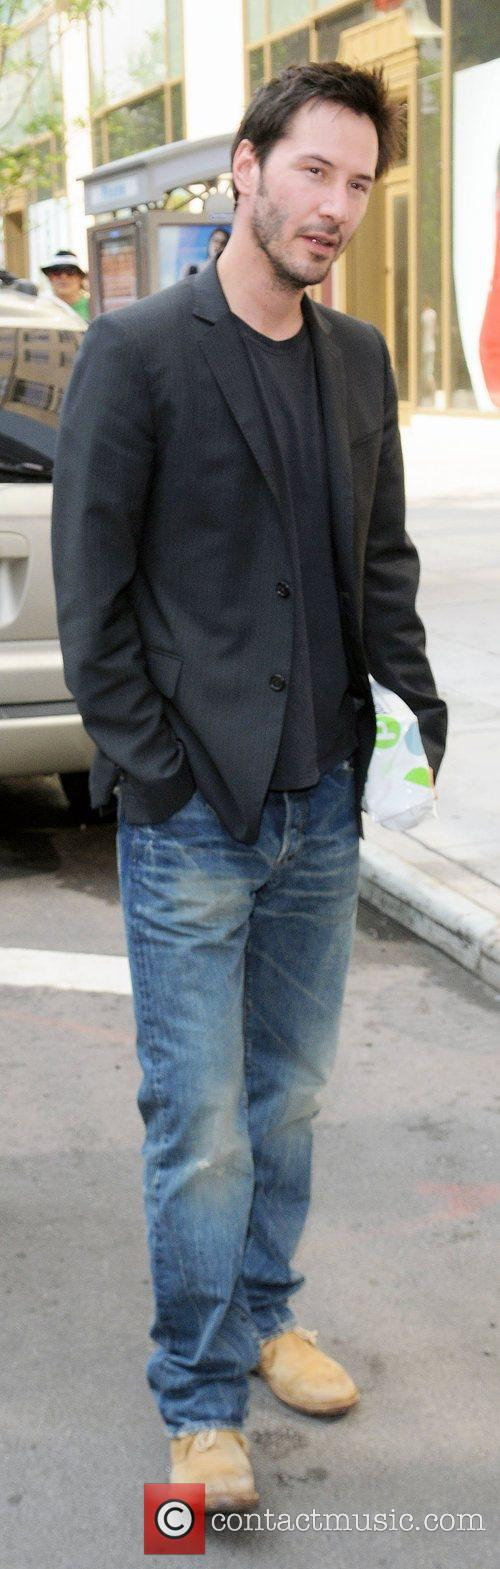 Keanu Reeves  out and about  New...